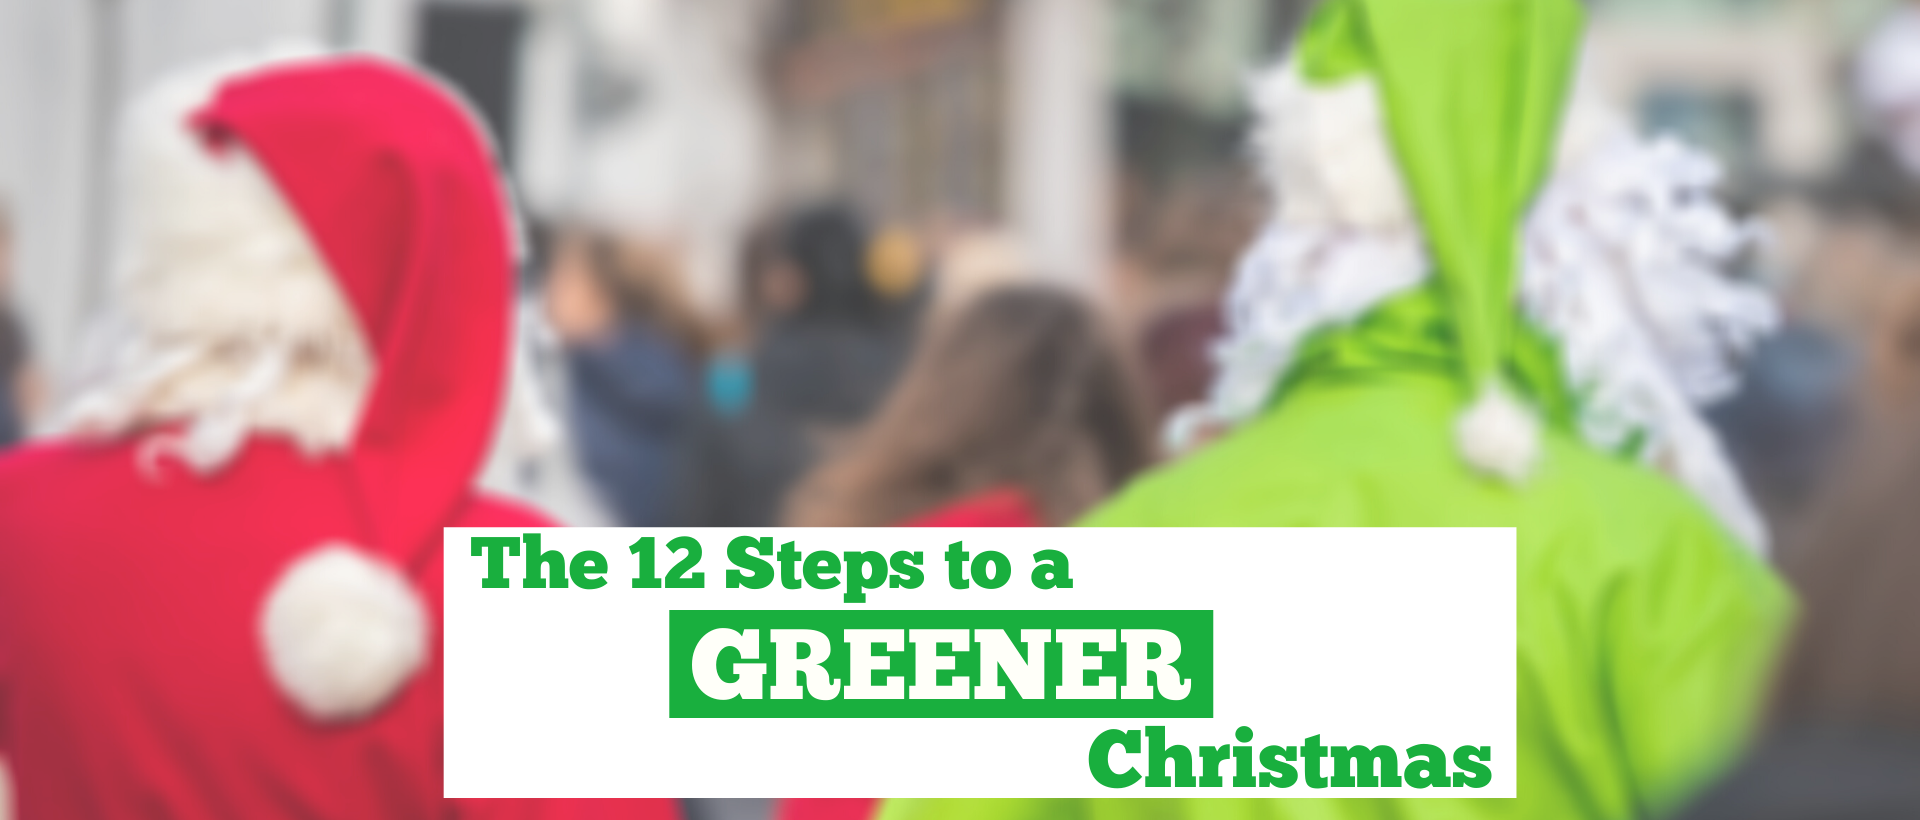 The 12 Steps to a Greener Christmas